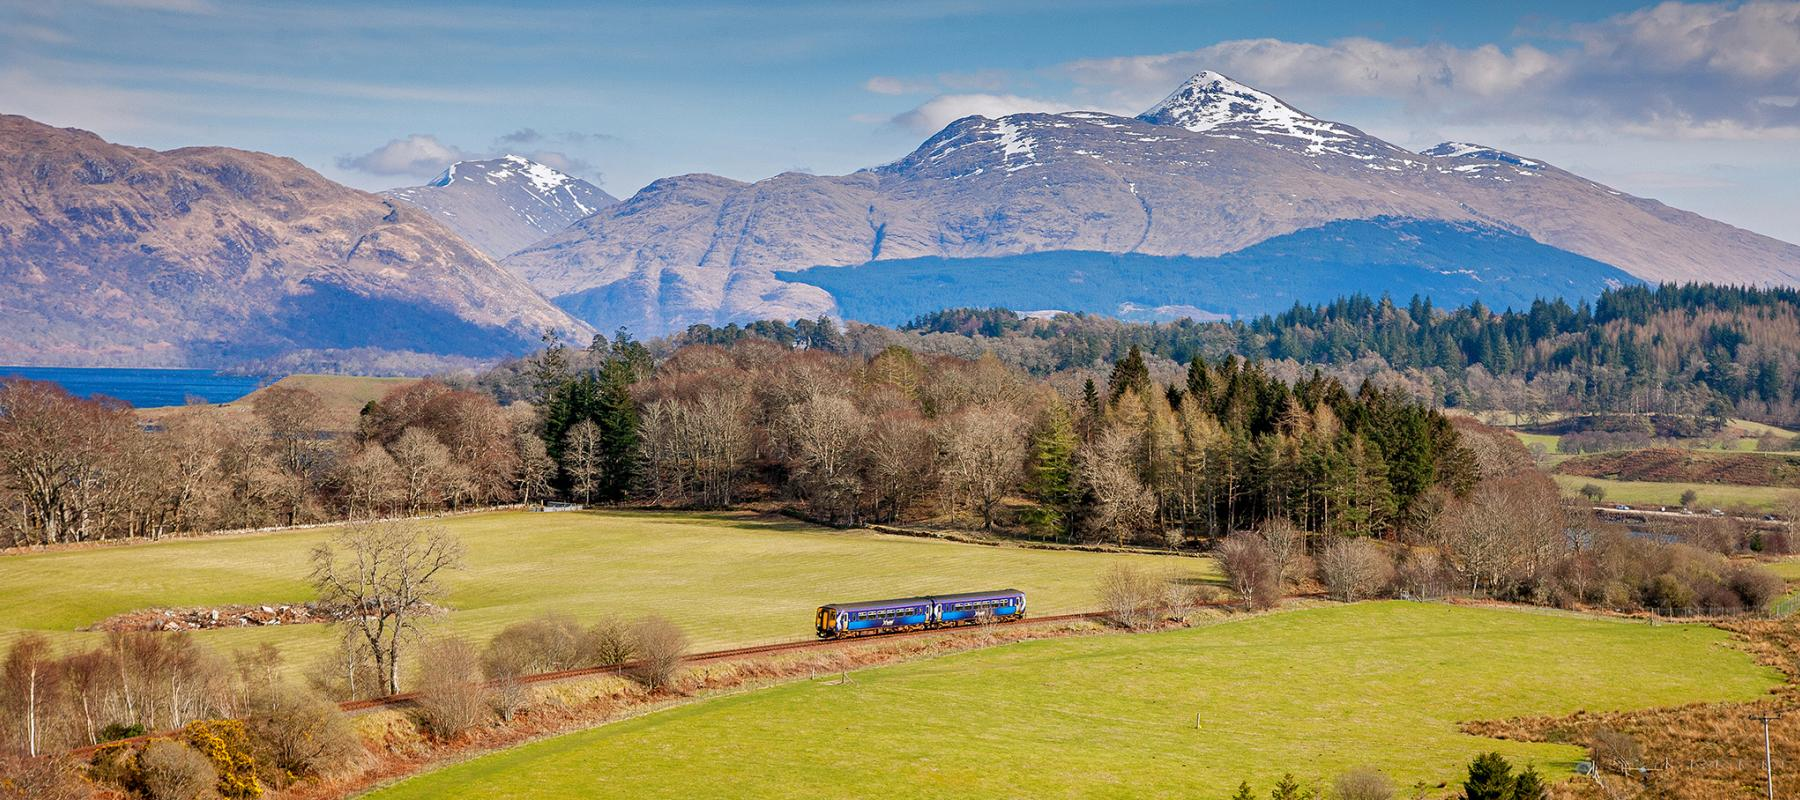 Train on the The West Highland Line with mountains in the background